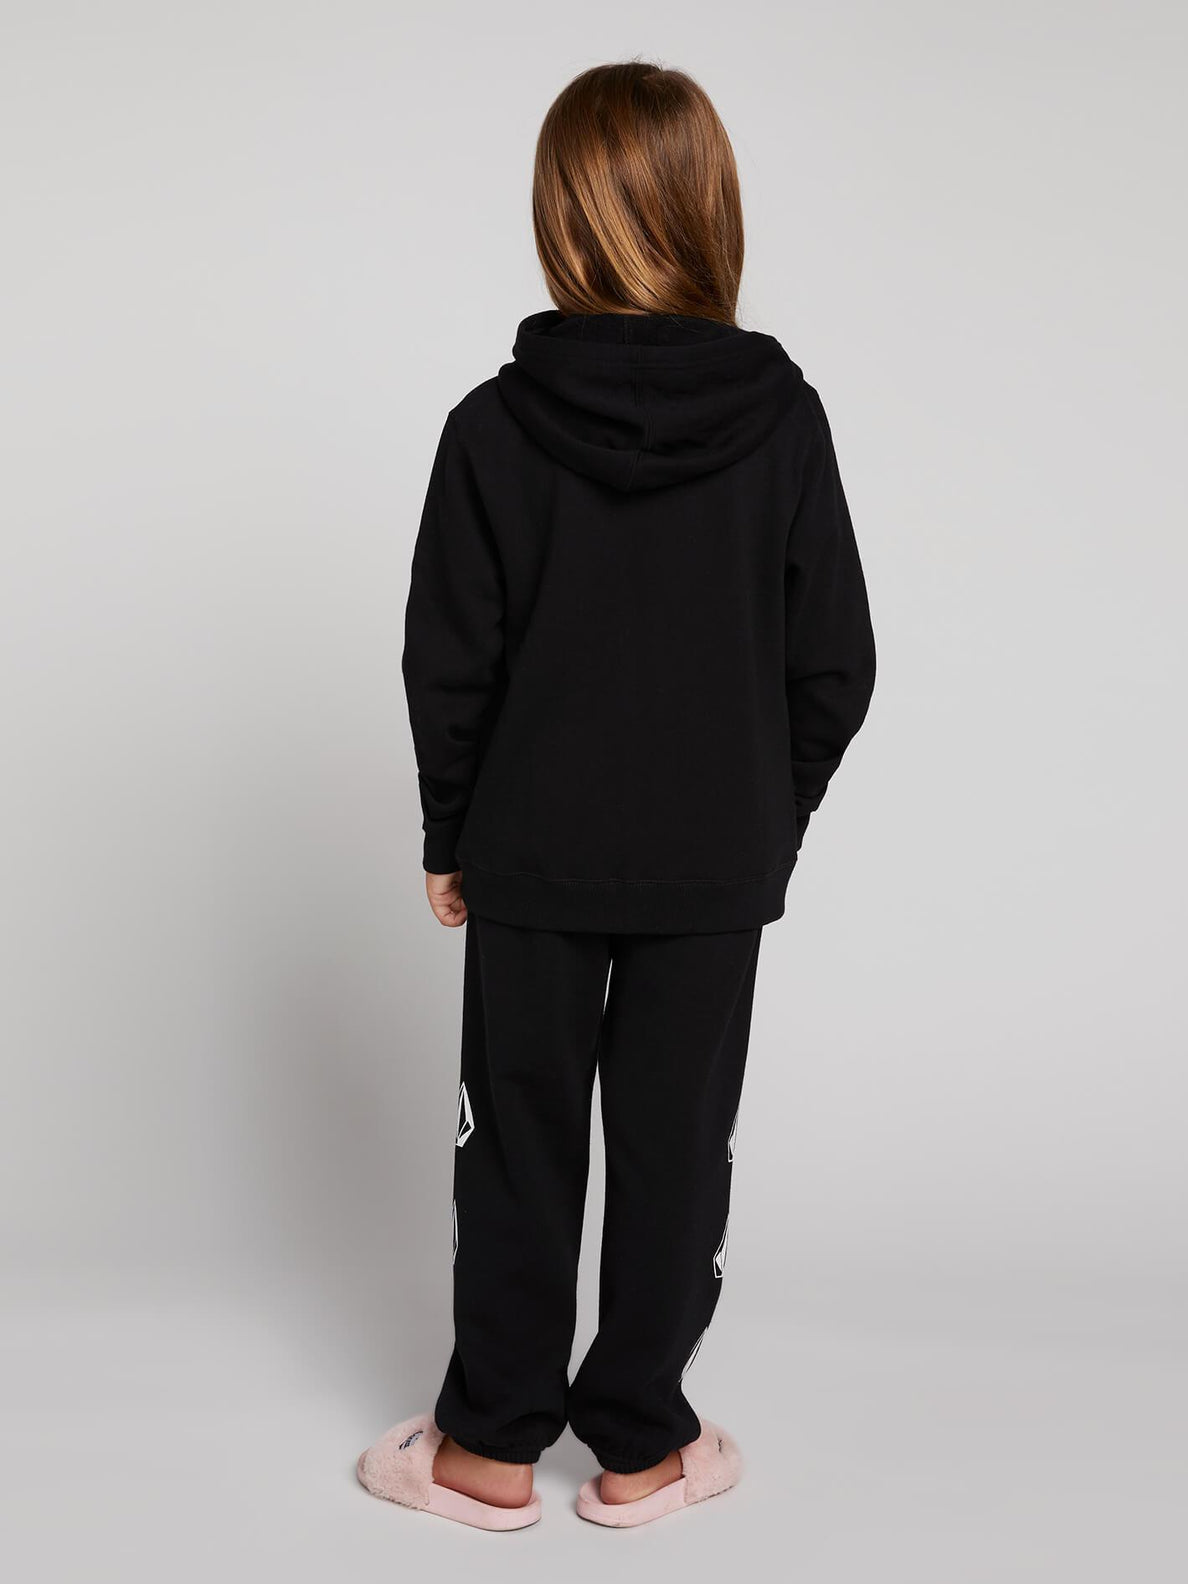 zippety-zip-black-1 (Kinder)